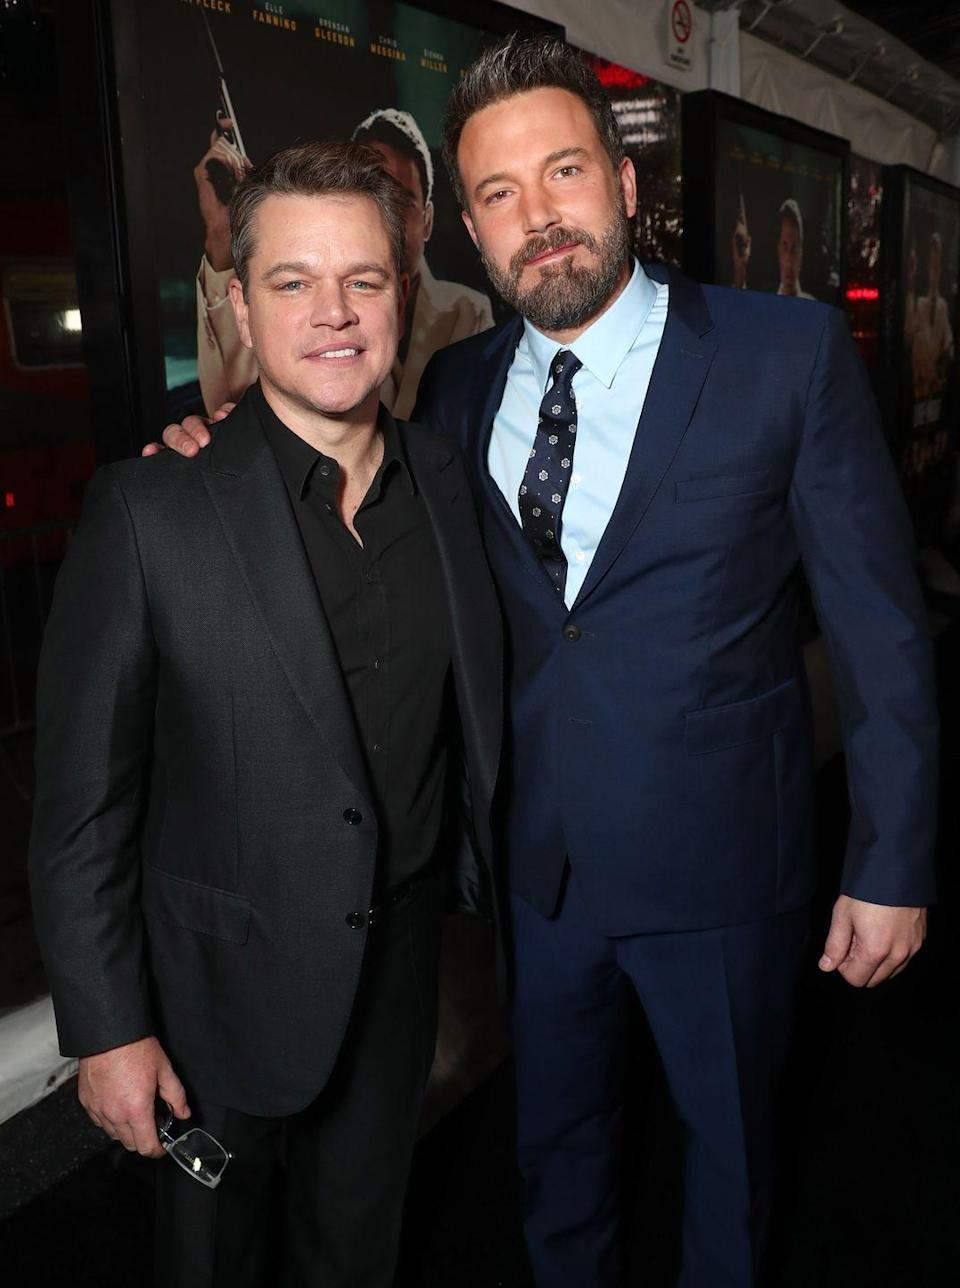 """<p>""""We grew up together….We were both in love with the same thing—acting and filmmaking. I think we fed on each other's obsession during really formative, important years and that bonded us for life."""" — Matt Damon,<em> <a href=""""https://www.etonline.com/movies/193595_matt_damon_on_growing_up_with_ben_affleck_and_why_he_s_glad_his_wife_s_not_famous"""" rel=""""nofollow noopener"""" target=""""_blank"""" data-ylk=""""slk:Entertainment Tonight"""" class=""""link rapid-noclick-resp"""">Entertainment Tonight</a></em></p><p>""""I can't tell you how valuable it is to have somebody who's been through things with you, ups and downs, who knows what your life experience is like, who can identify with that. It's an incredibly valuable friendship and it's very precious."""" — Ben Affleck, <em><a href=""""https://www.etonline.com/ben-affleck-and-matt-damon-team-up-for-first-film-together-in-almost-15-years-107298"""" rel=""""nofollow noopener"""" target=""""_blank"""" data-ylk=""""slk:Entertainment Tonight"""" class=""""link rapid-noclick-resp"""">Entertainment Tonight</a></em></p>"""